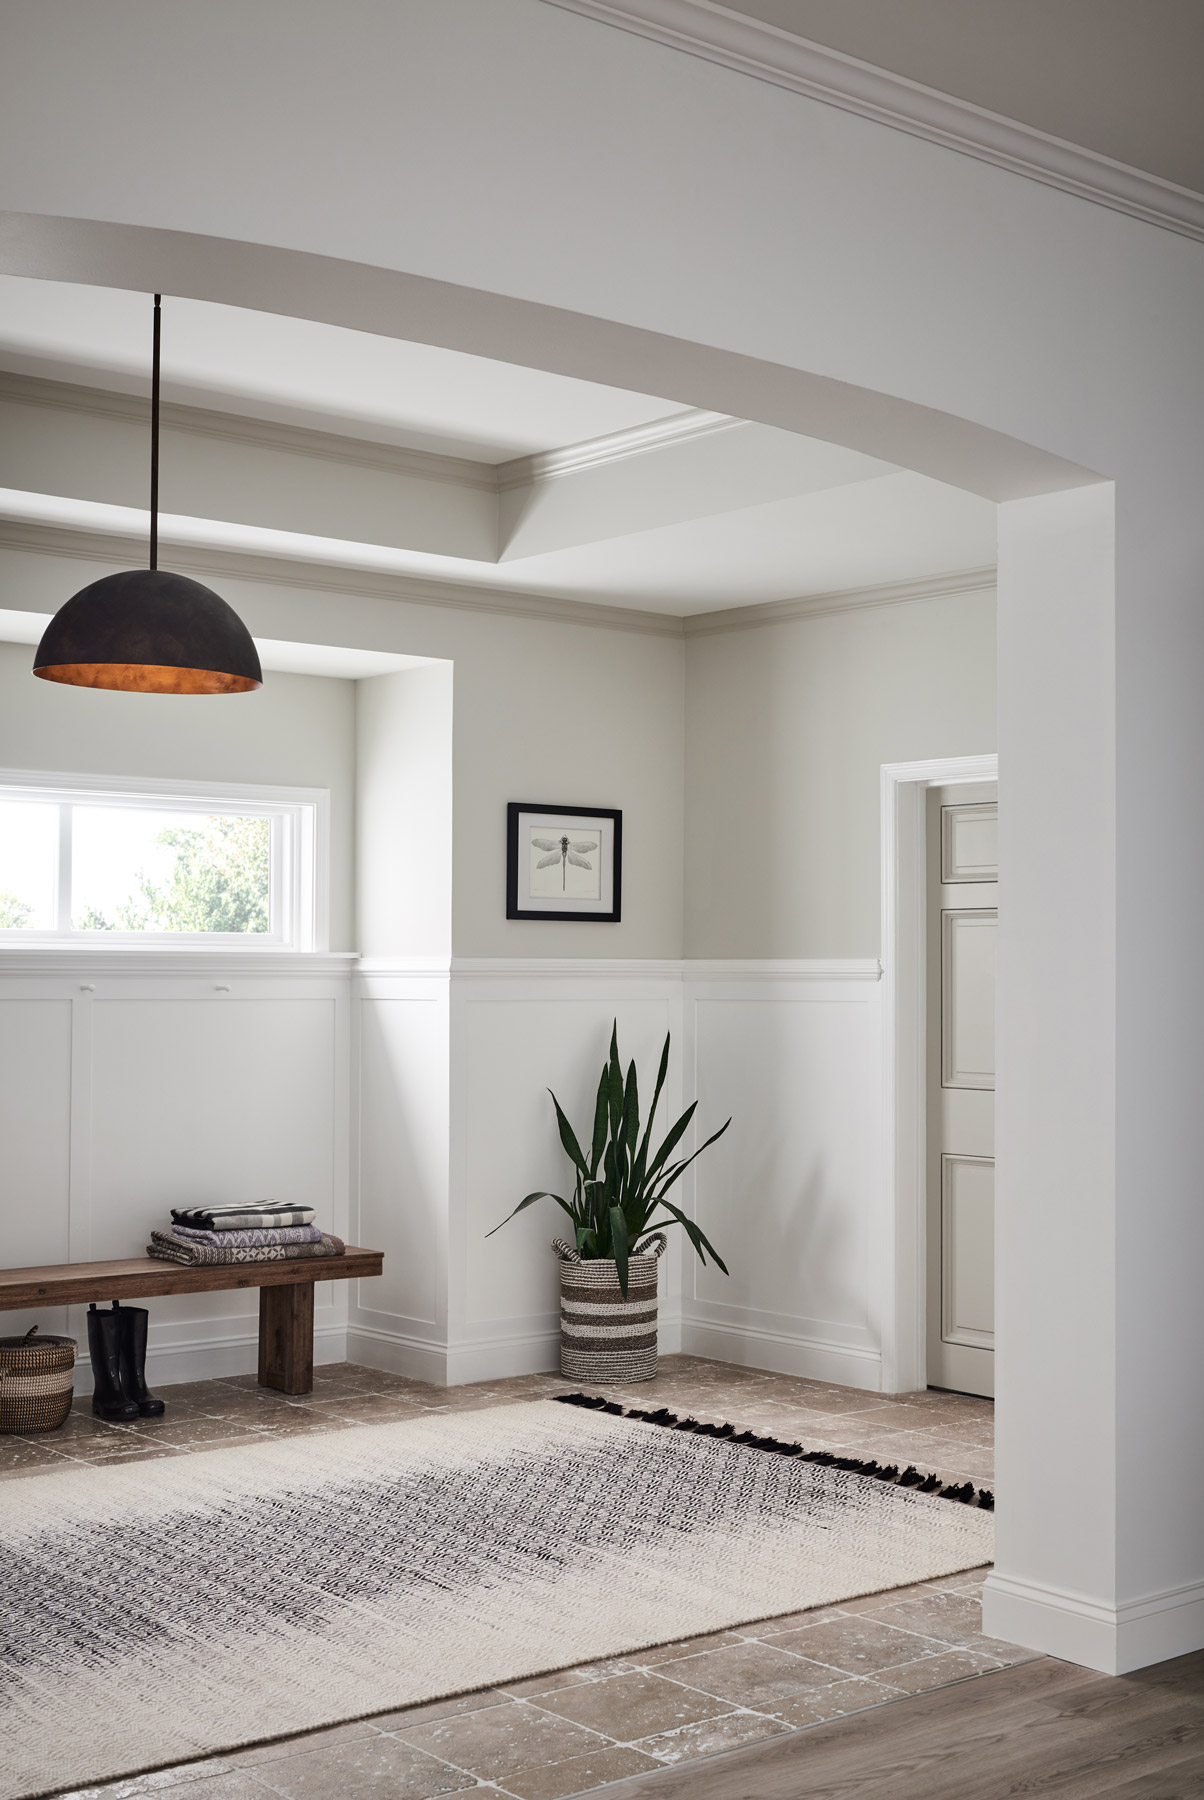 Entryway ideas - Choose wainscoting